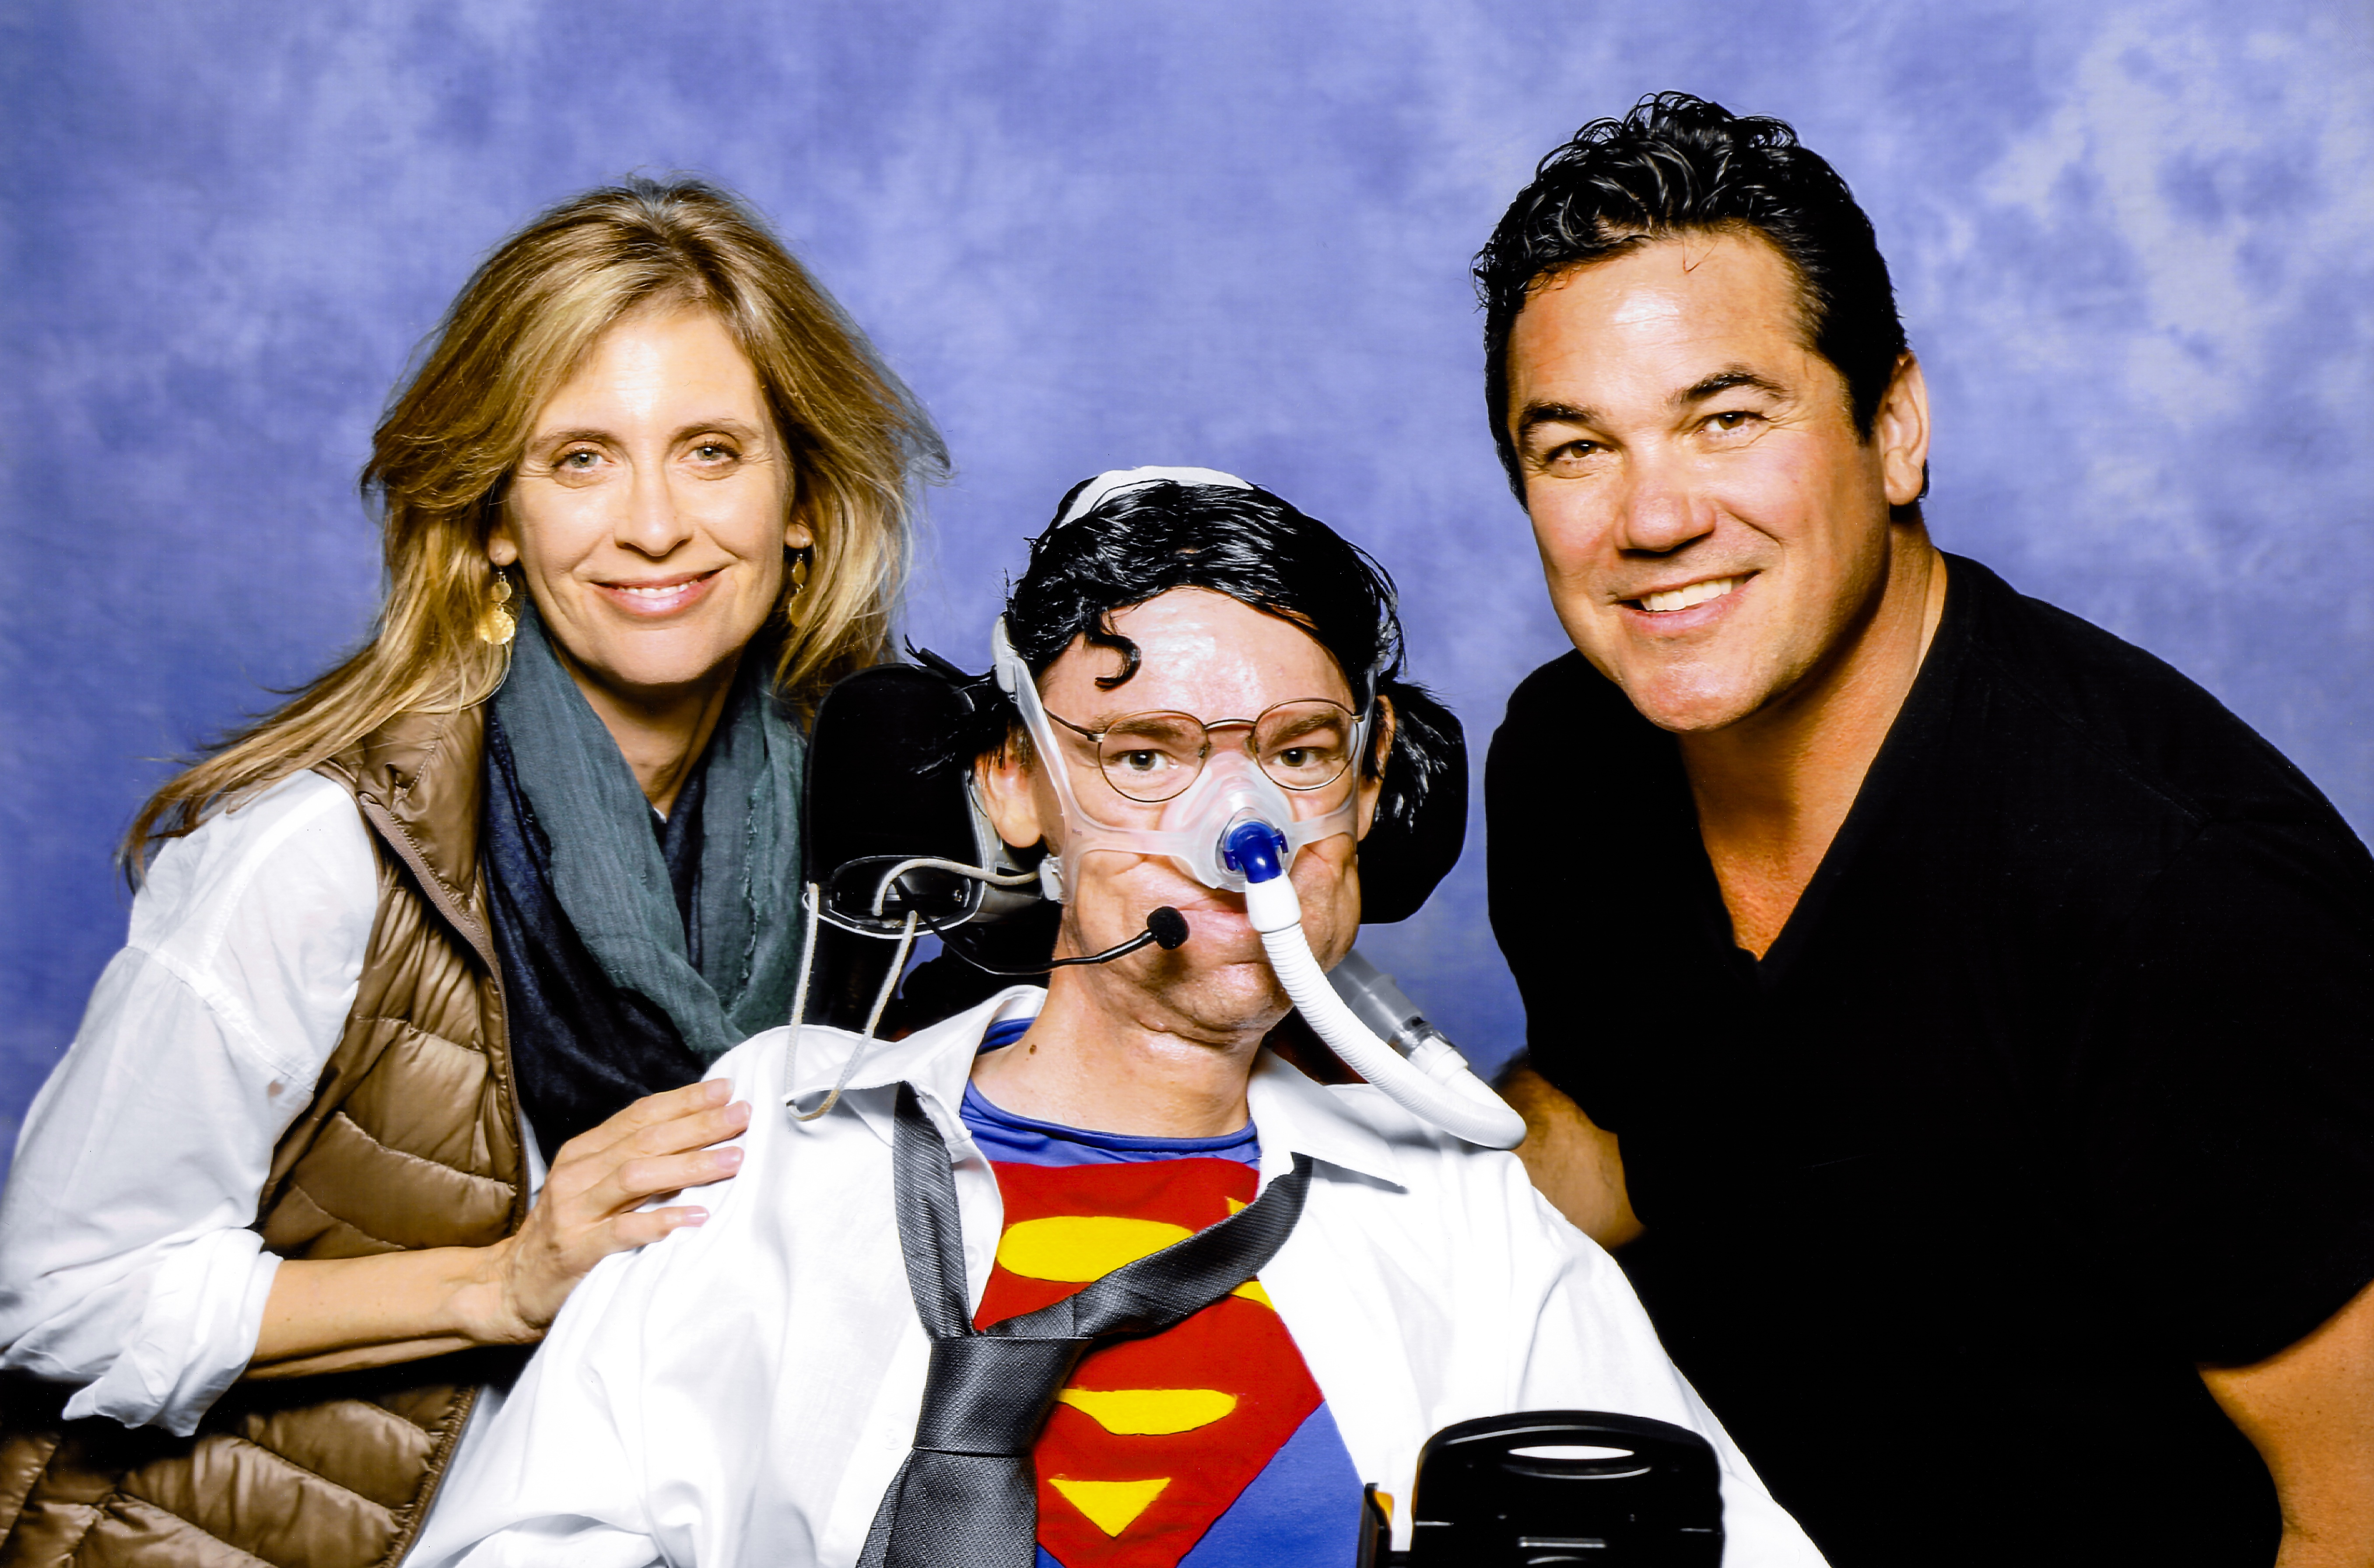 Helen Slater and Dean Cain